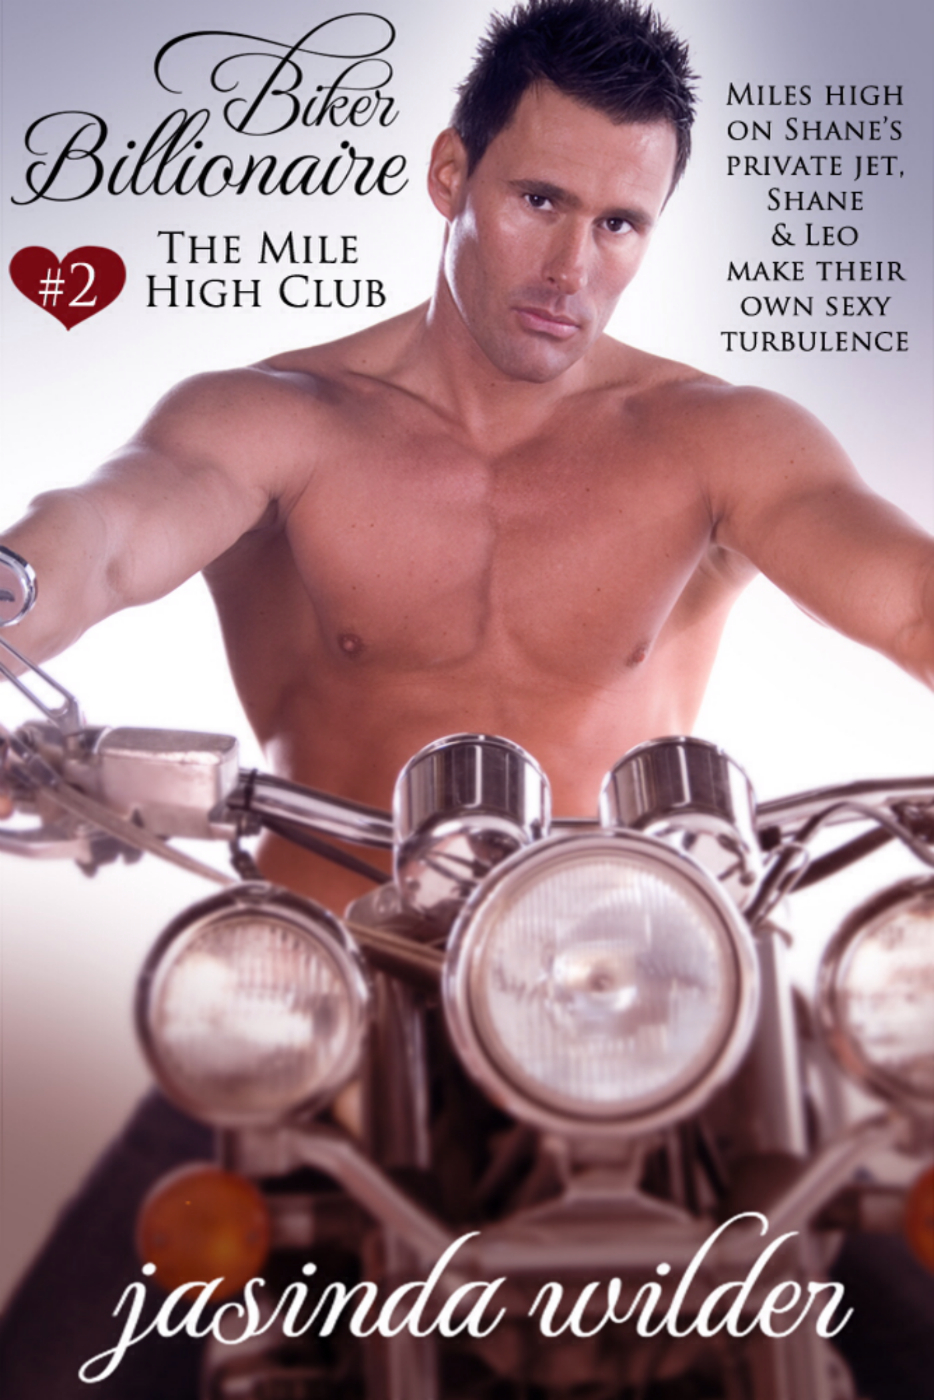 Biker Billionaire #2: The Mile High Club (Erotic Romance)